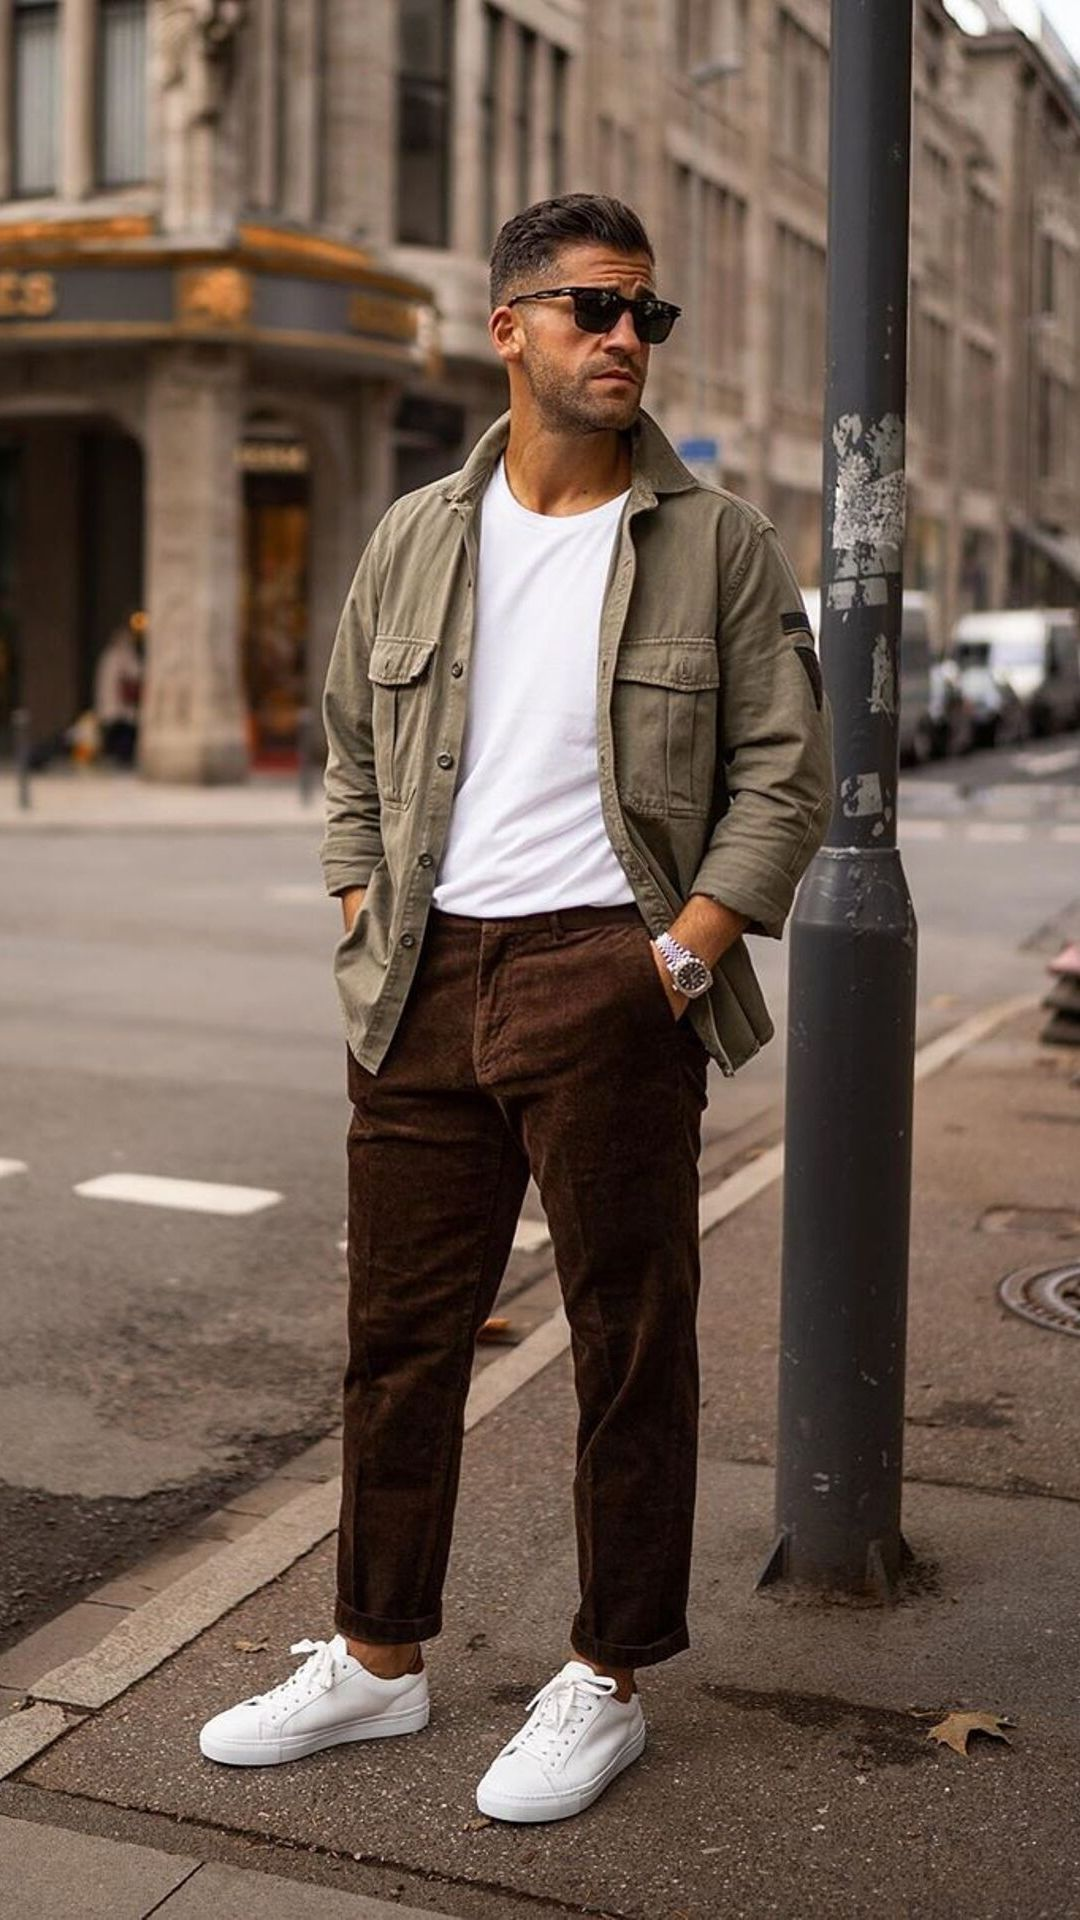 5 Casual Street Style Looks For Men #mensstyle